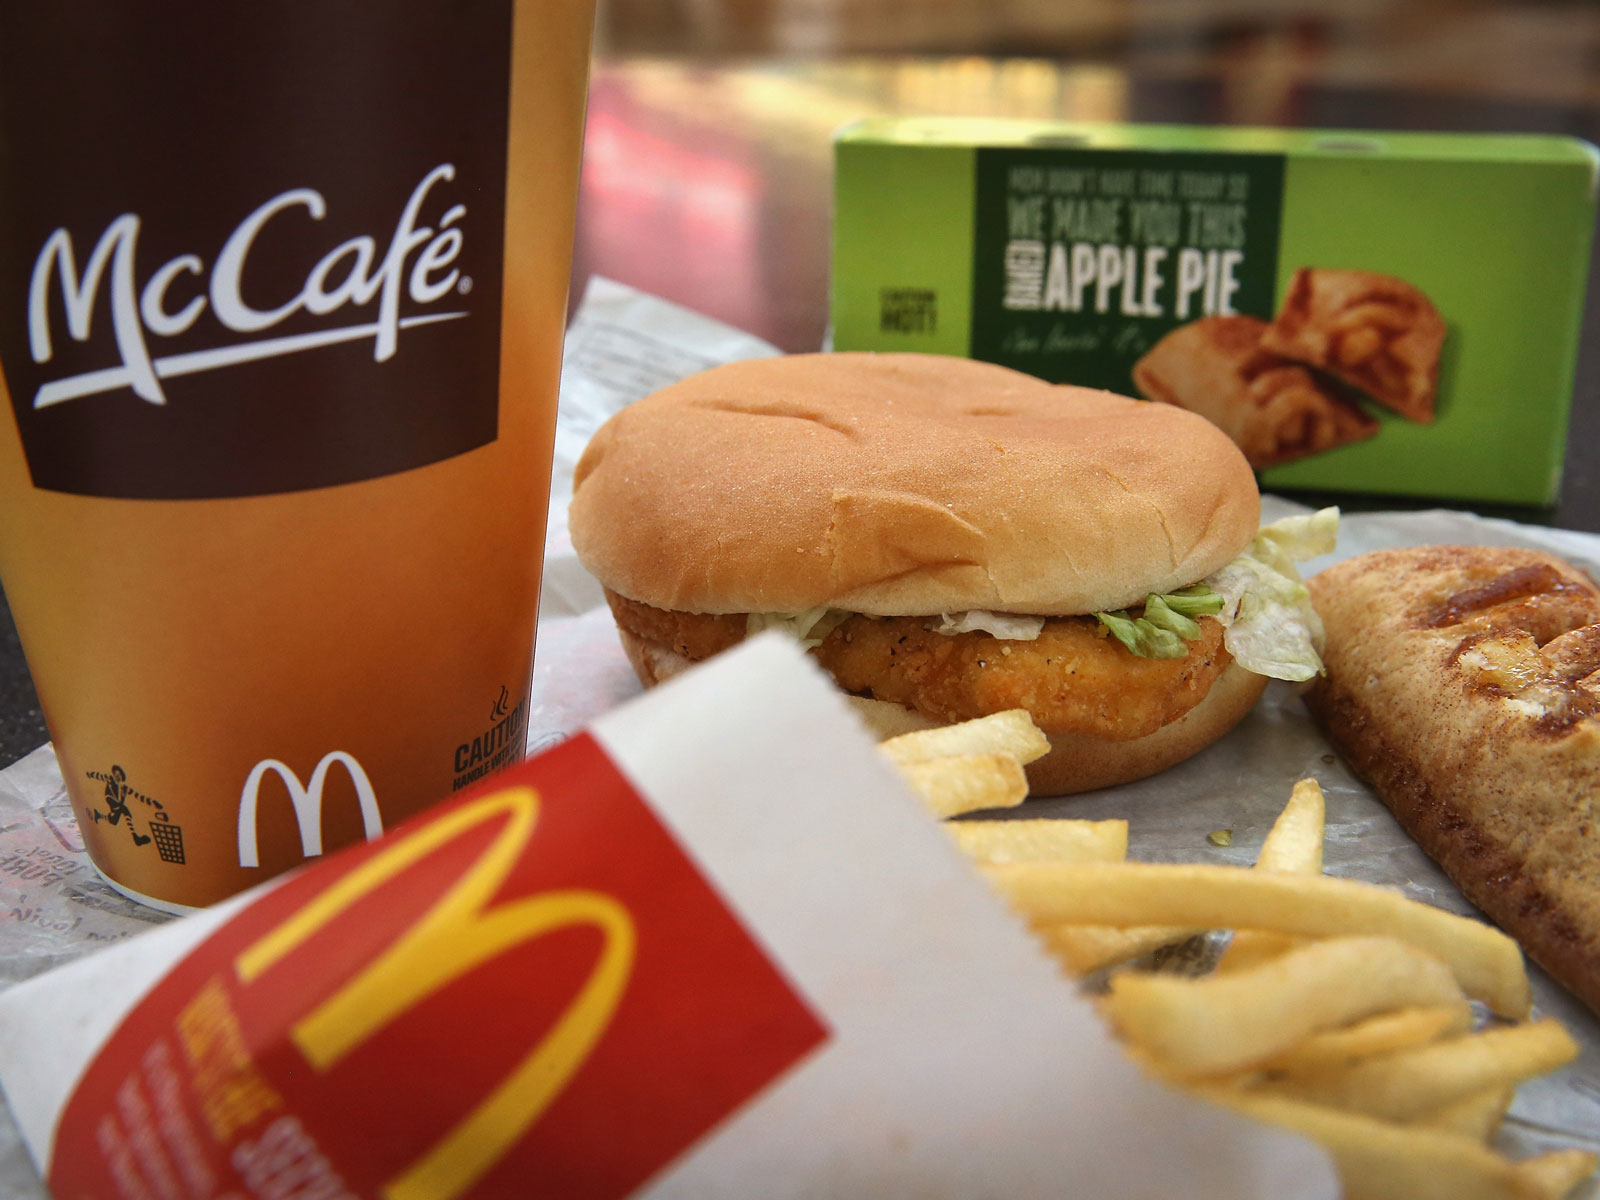 You want AIs with that? McDonald's buys into machine learning